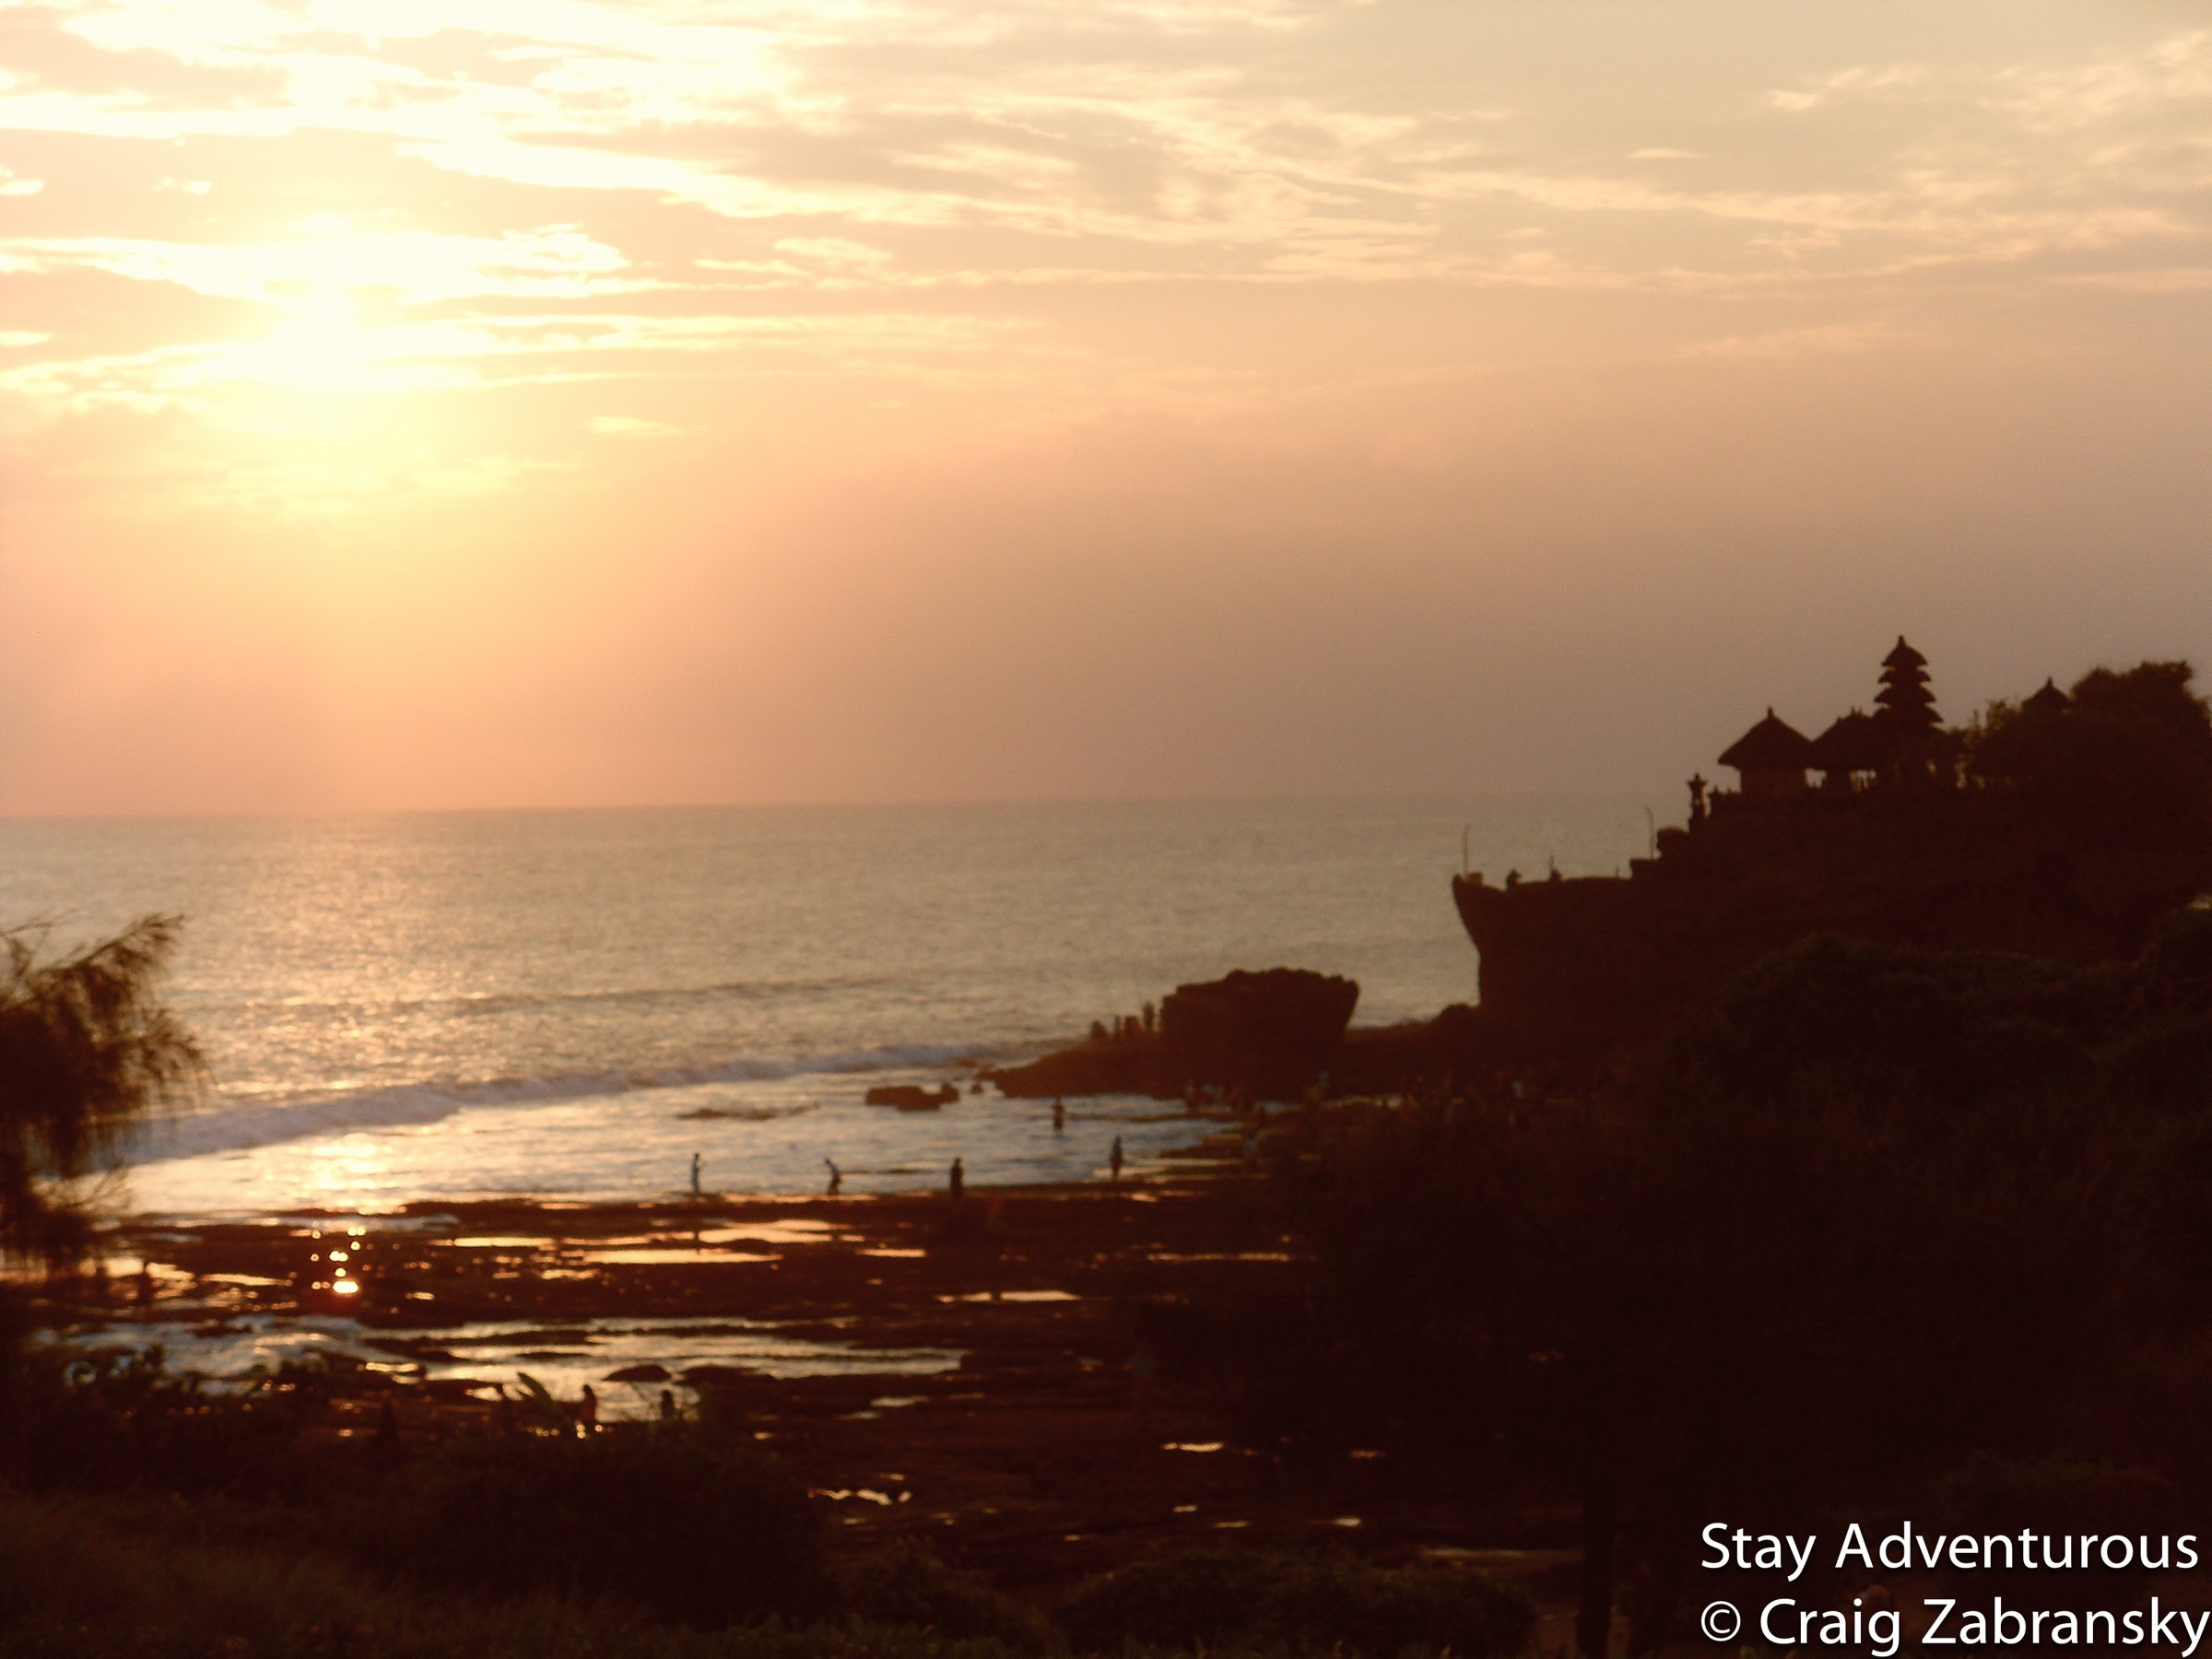 sunset at Tanah Lot Hindu Temple in Bali, Indonesia